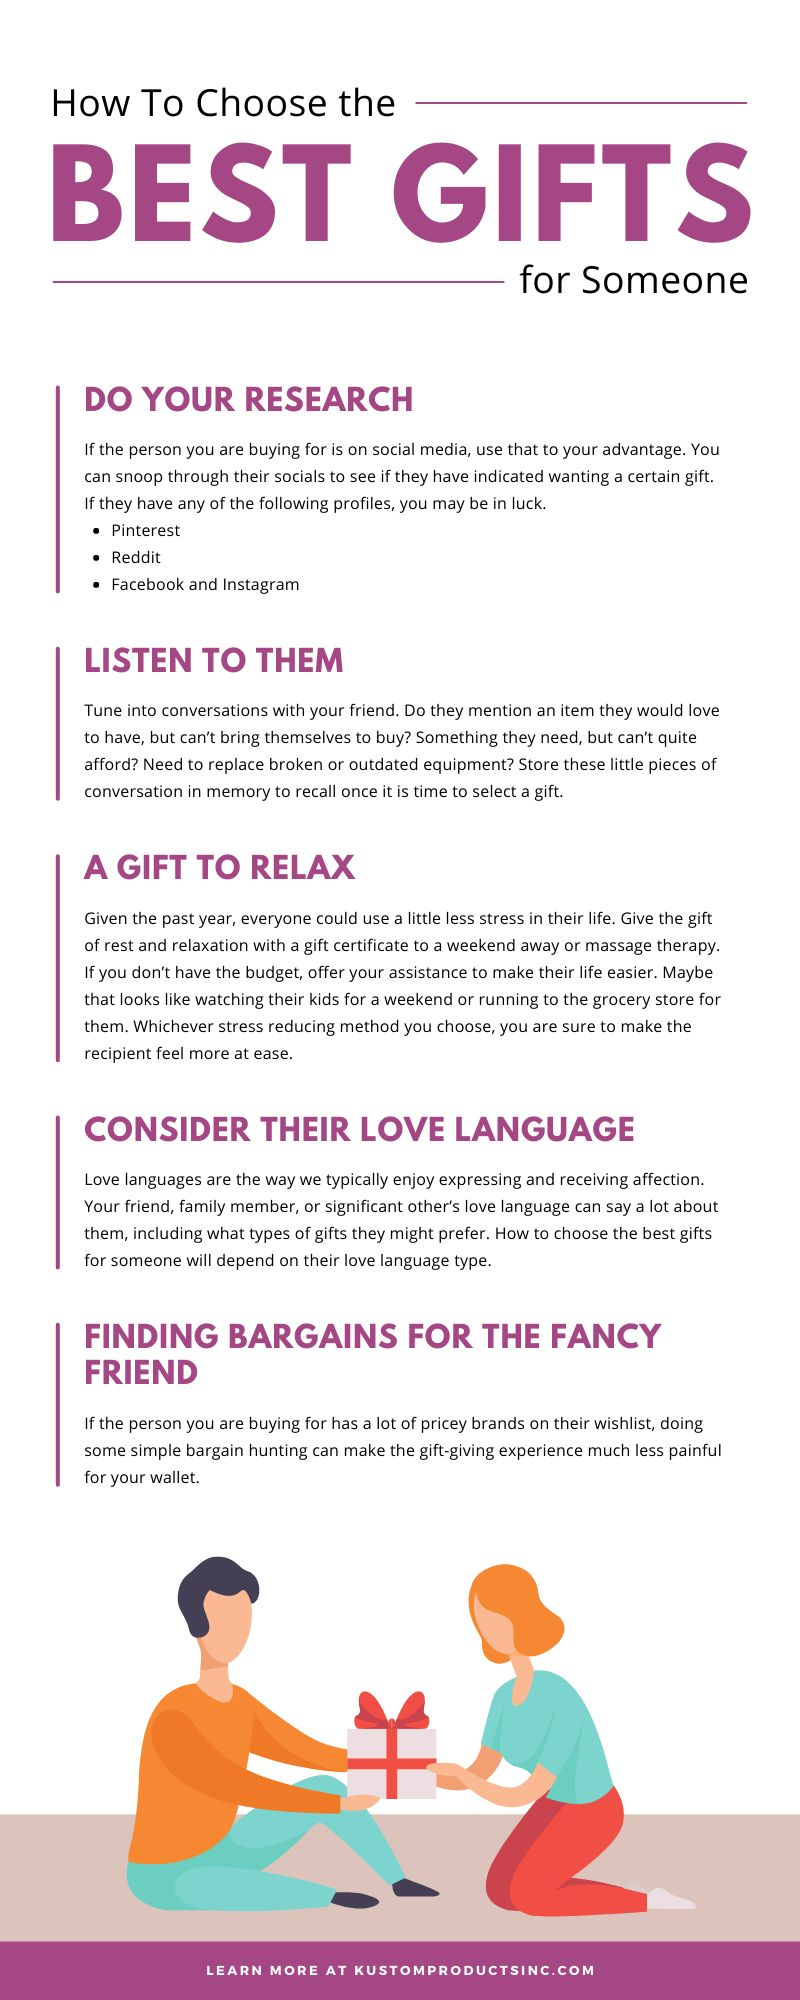 How To Choose the Best Gifts for Someone